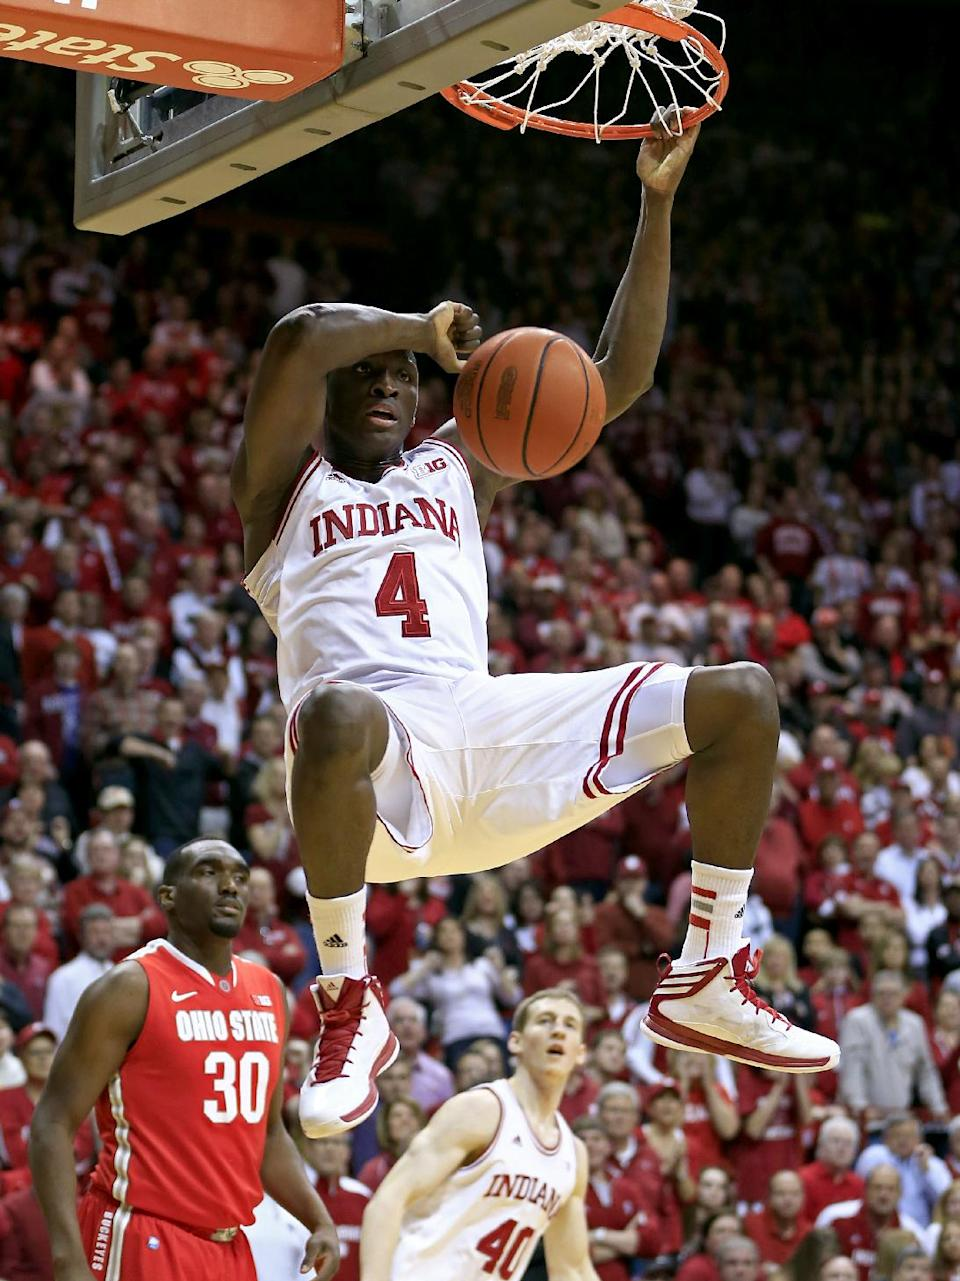 Indiana's Victor Oladipo (4) dunks during the second half of an NCAA college basketball game against Ohio State, Tuesday, March 5, 2013, in Bloomington, Ind. Ohio State won 67-58. (AP Photo/Darron Cummings)